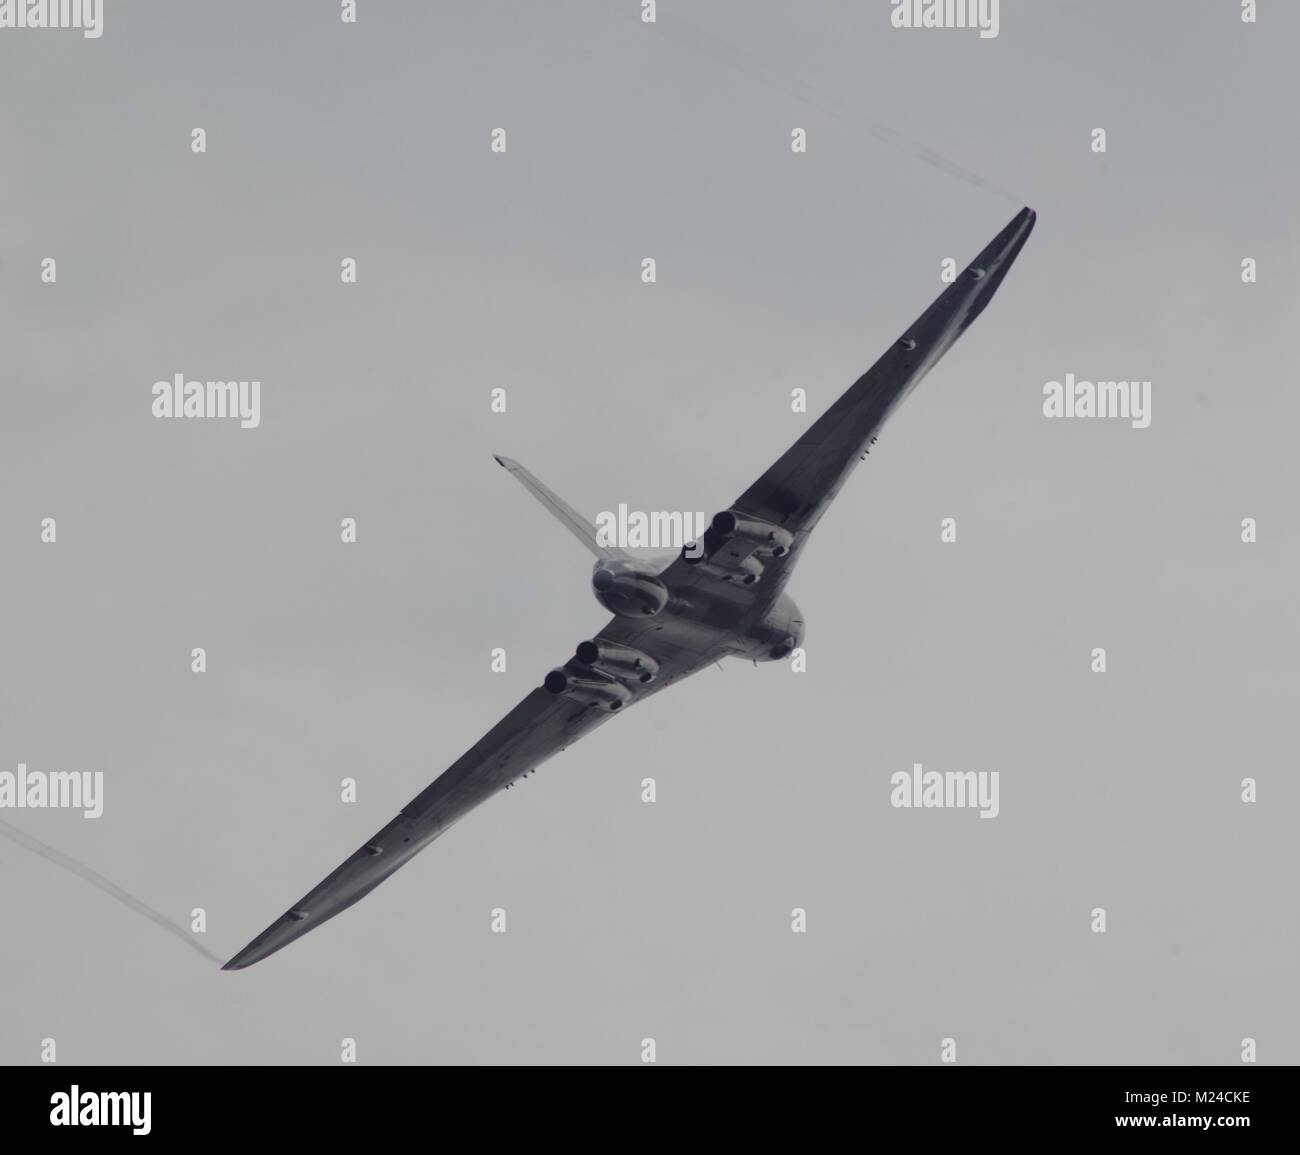 The Avro Vulcan, Iconic Delta Winged, Nuclear Capable Bomber of the Cold War. Best of Brirish. Flying at Dawlish - Stock Image